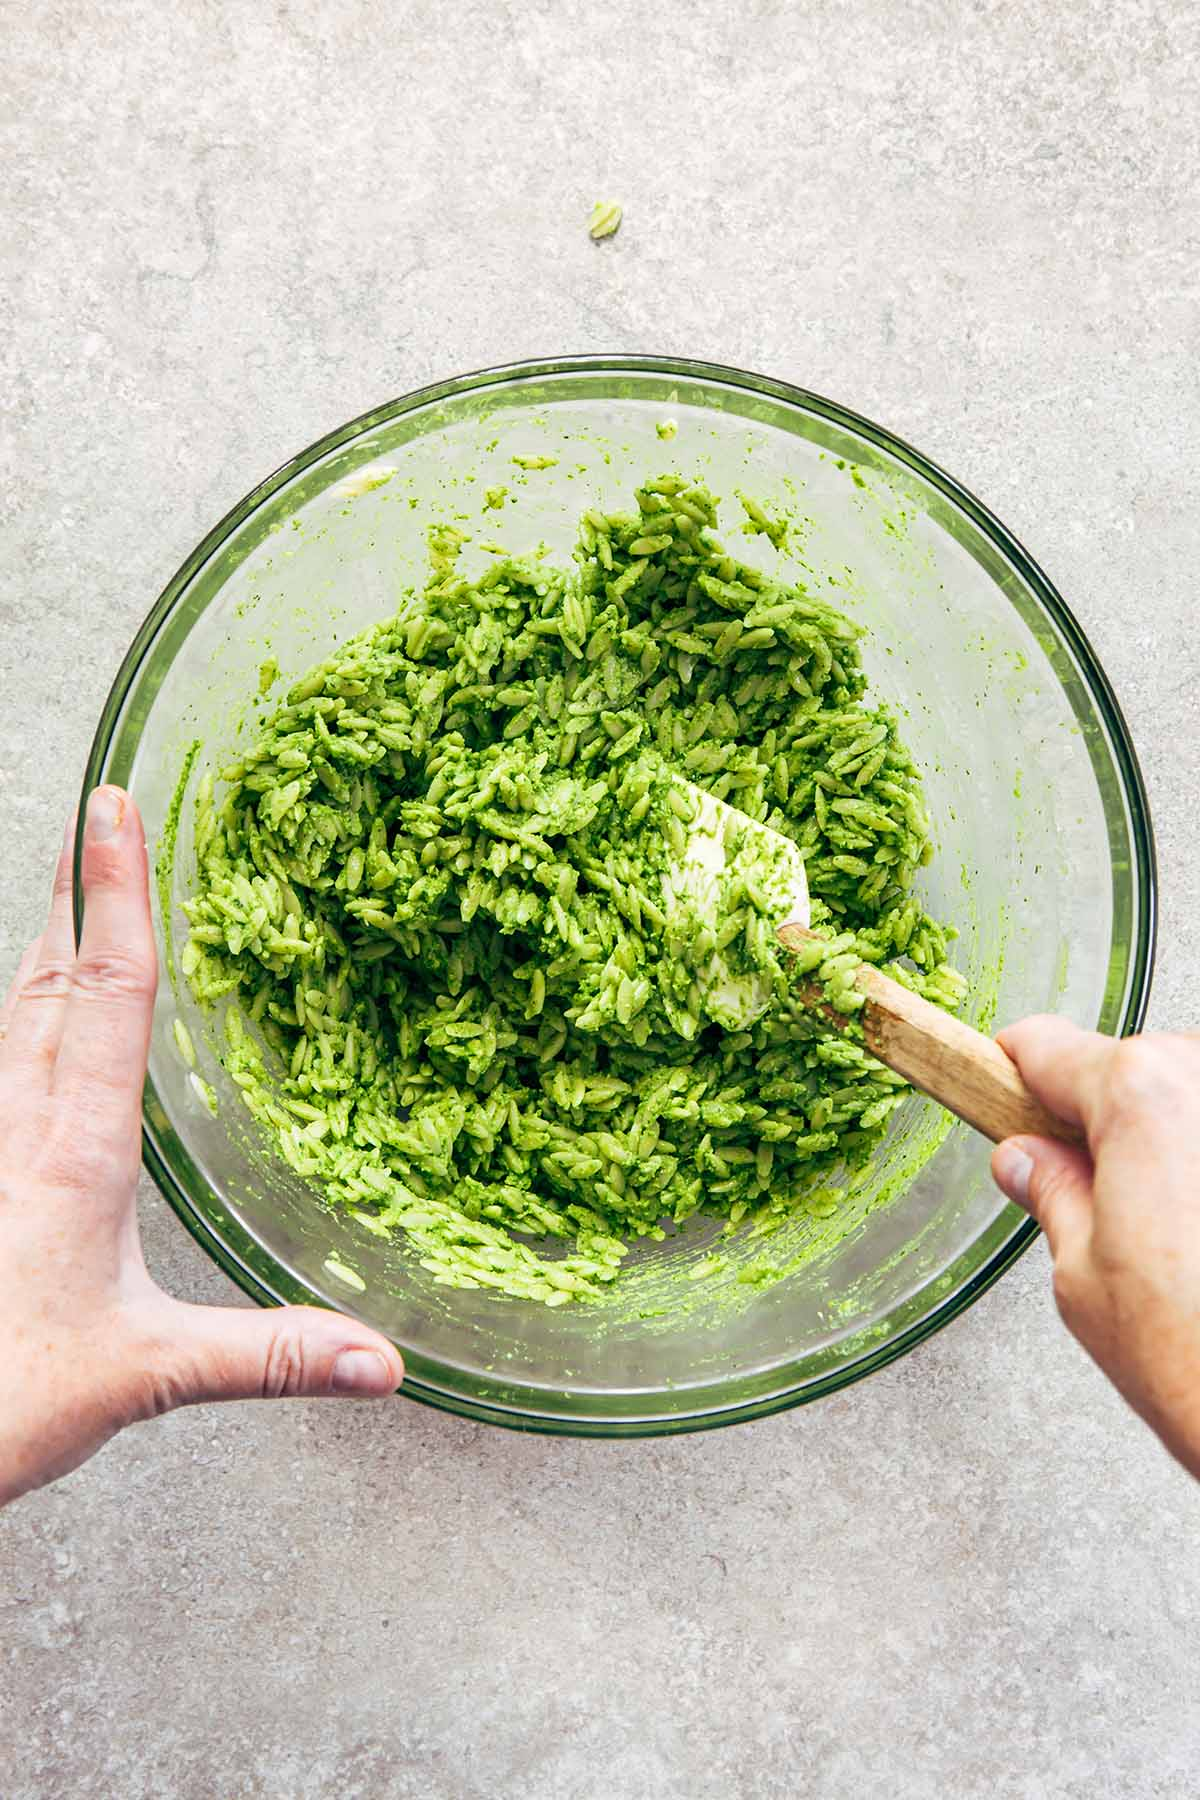 Hands stirring cooked orzo mixed with green pesto.